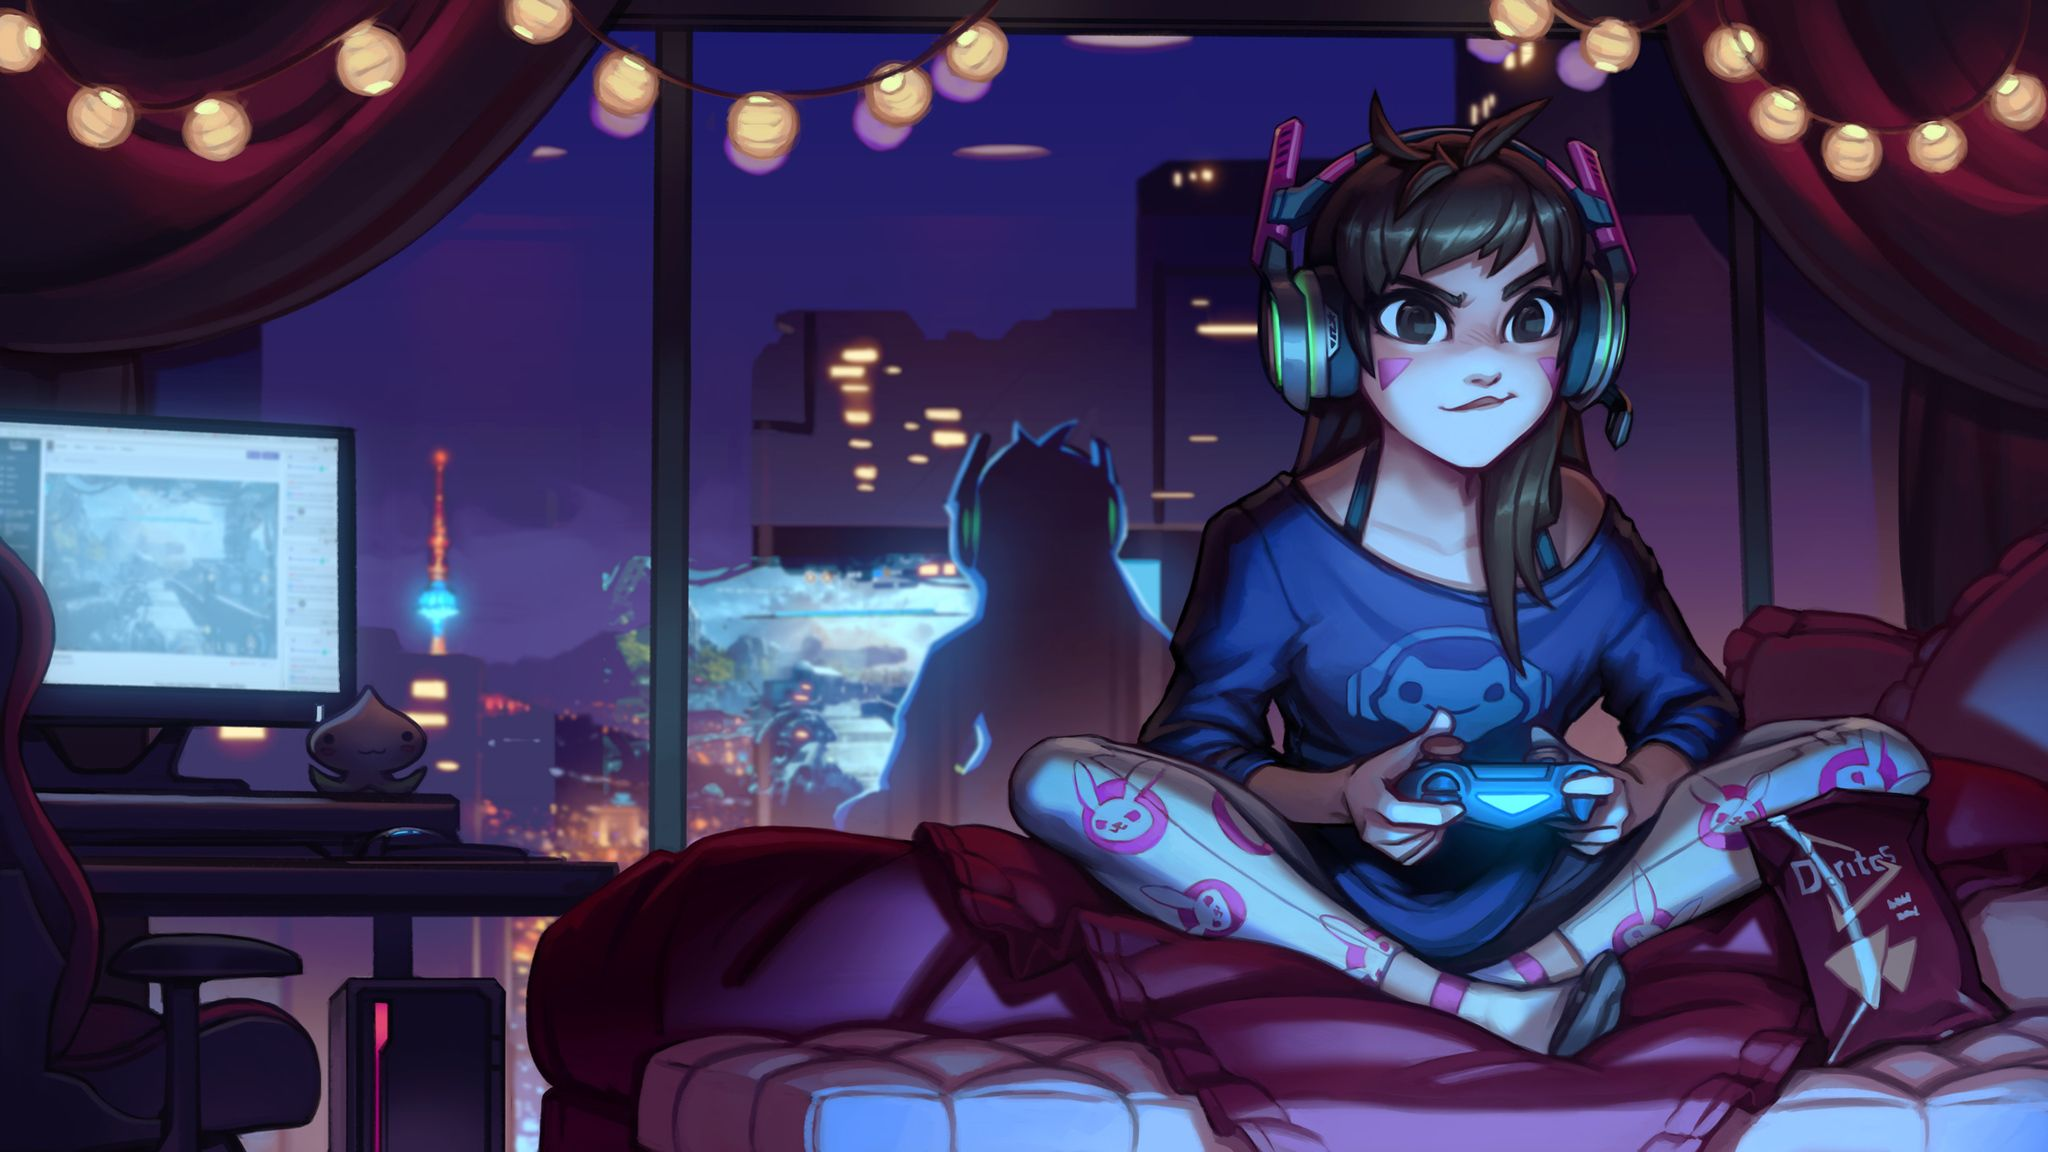 Character Inspiration Girl Playing Video Games In The City Overwatch Wallpapers Overwatch Fan Art Anime